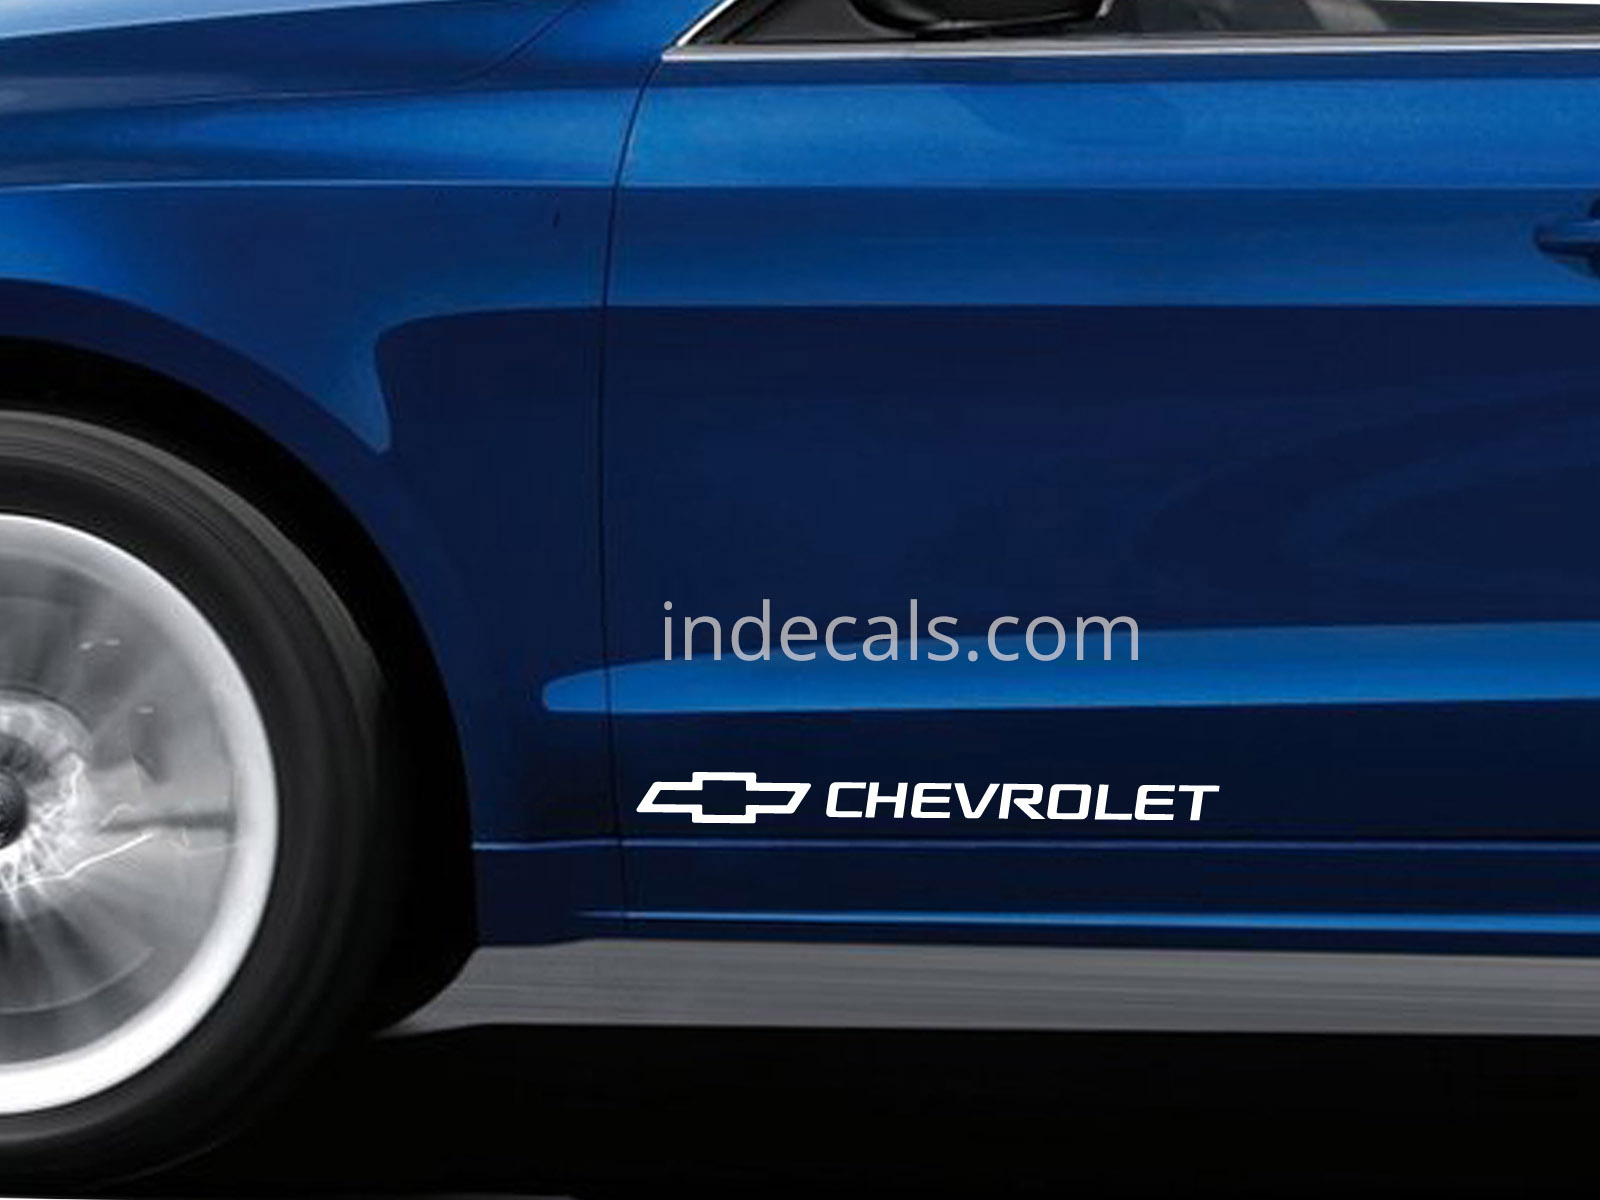 2 x Chevrolet Stickers for Doors Large - White